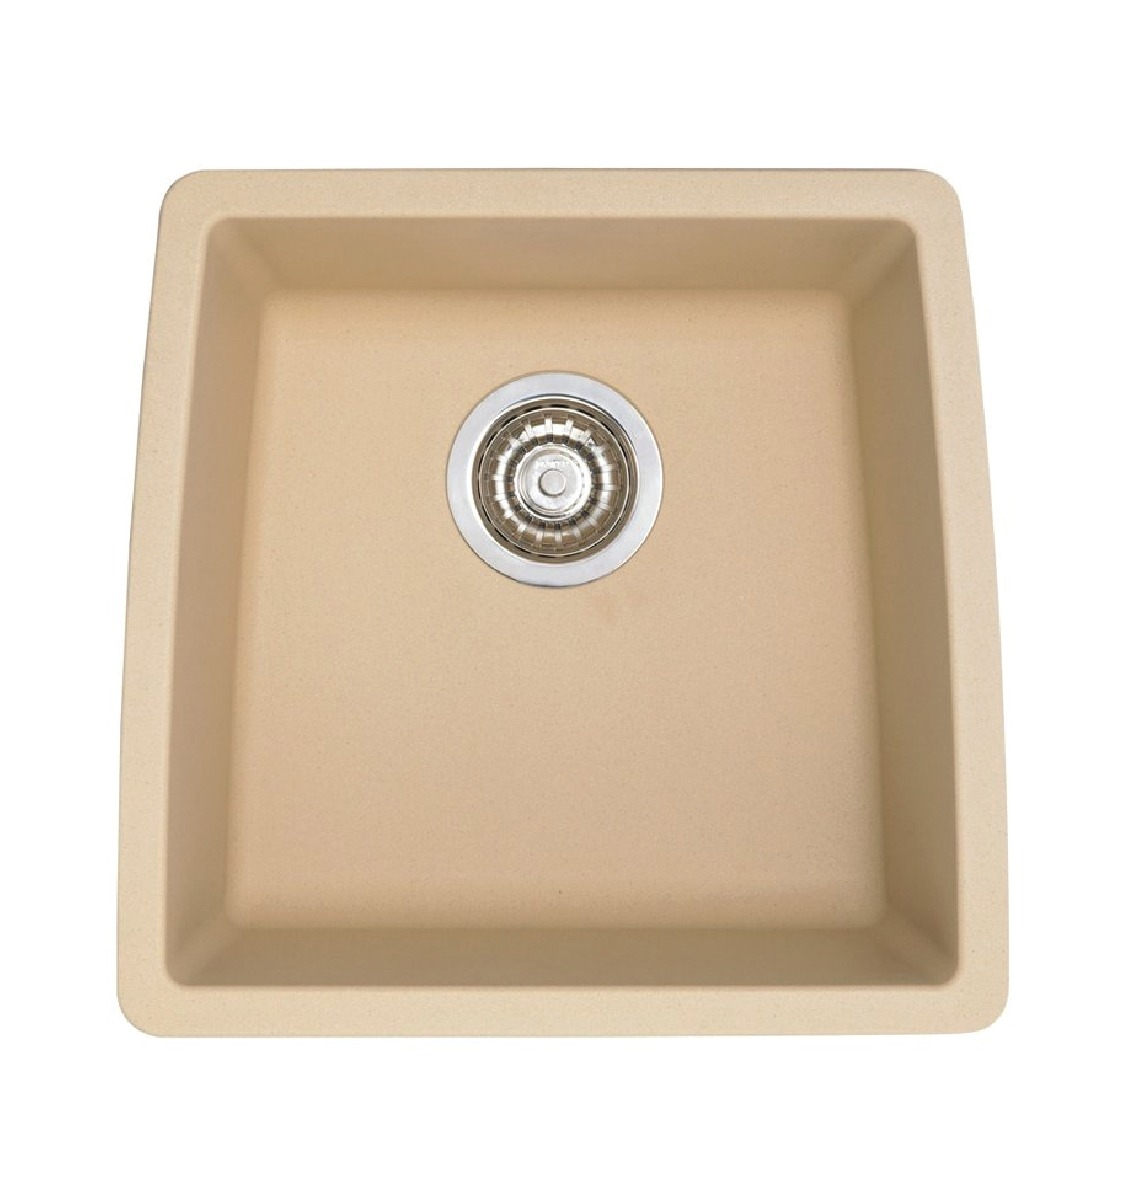 Blanco Silgranit Kitchen Sinks : Blanco 441224 Performa Silgranit II Single Bowl Sink, Biscotti ...